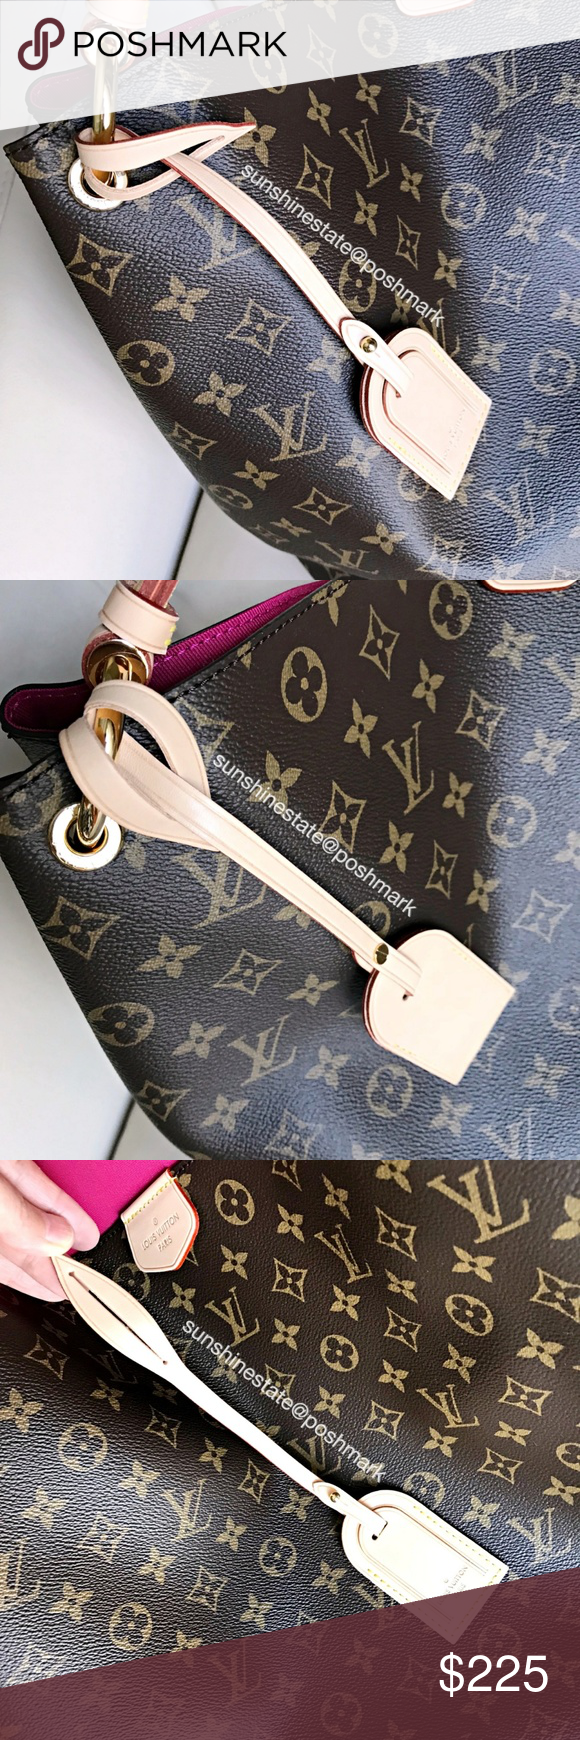 9f8d1f9138f Louis Vuitton Vachetta Luggage Tag Graceful mono New! Authentic! Comes from  my LV Graceful monogram bag in brand new never used condition as pictured.